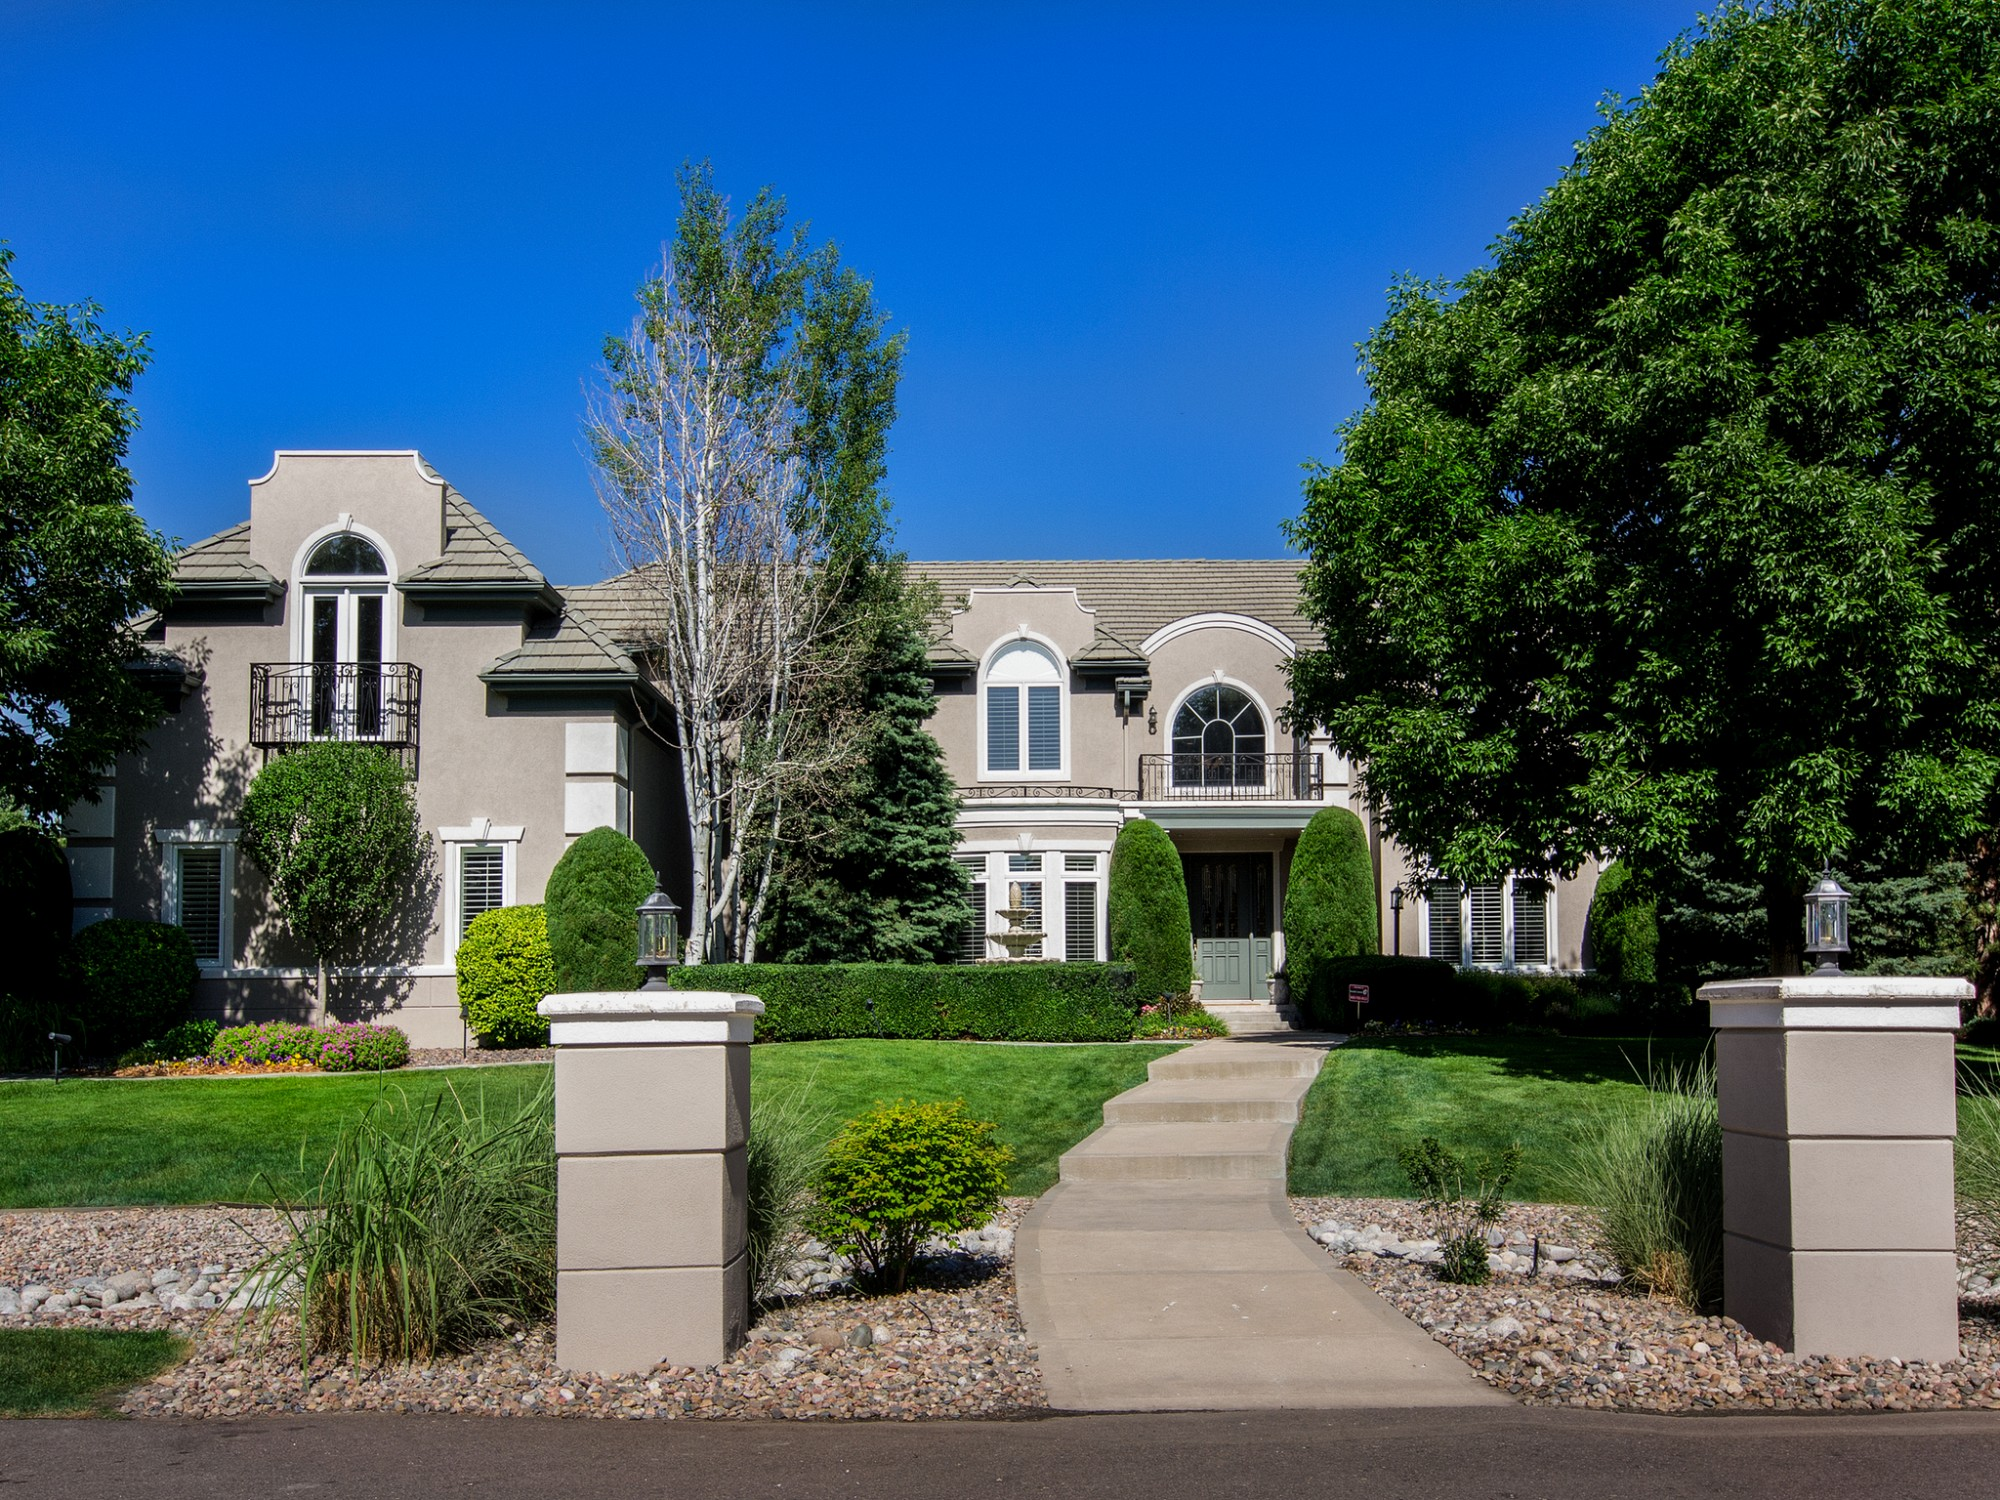 7611 S Polo Ridge Dr, Littleton, CO 80128